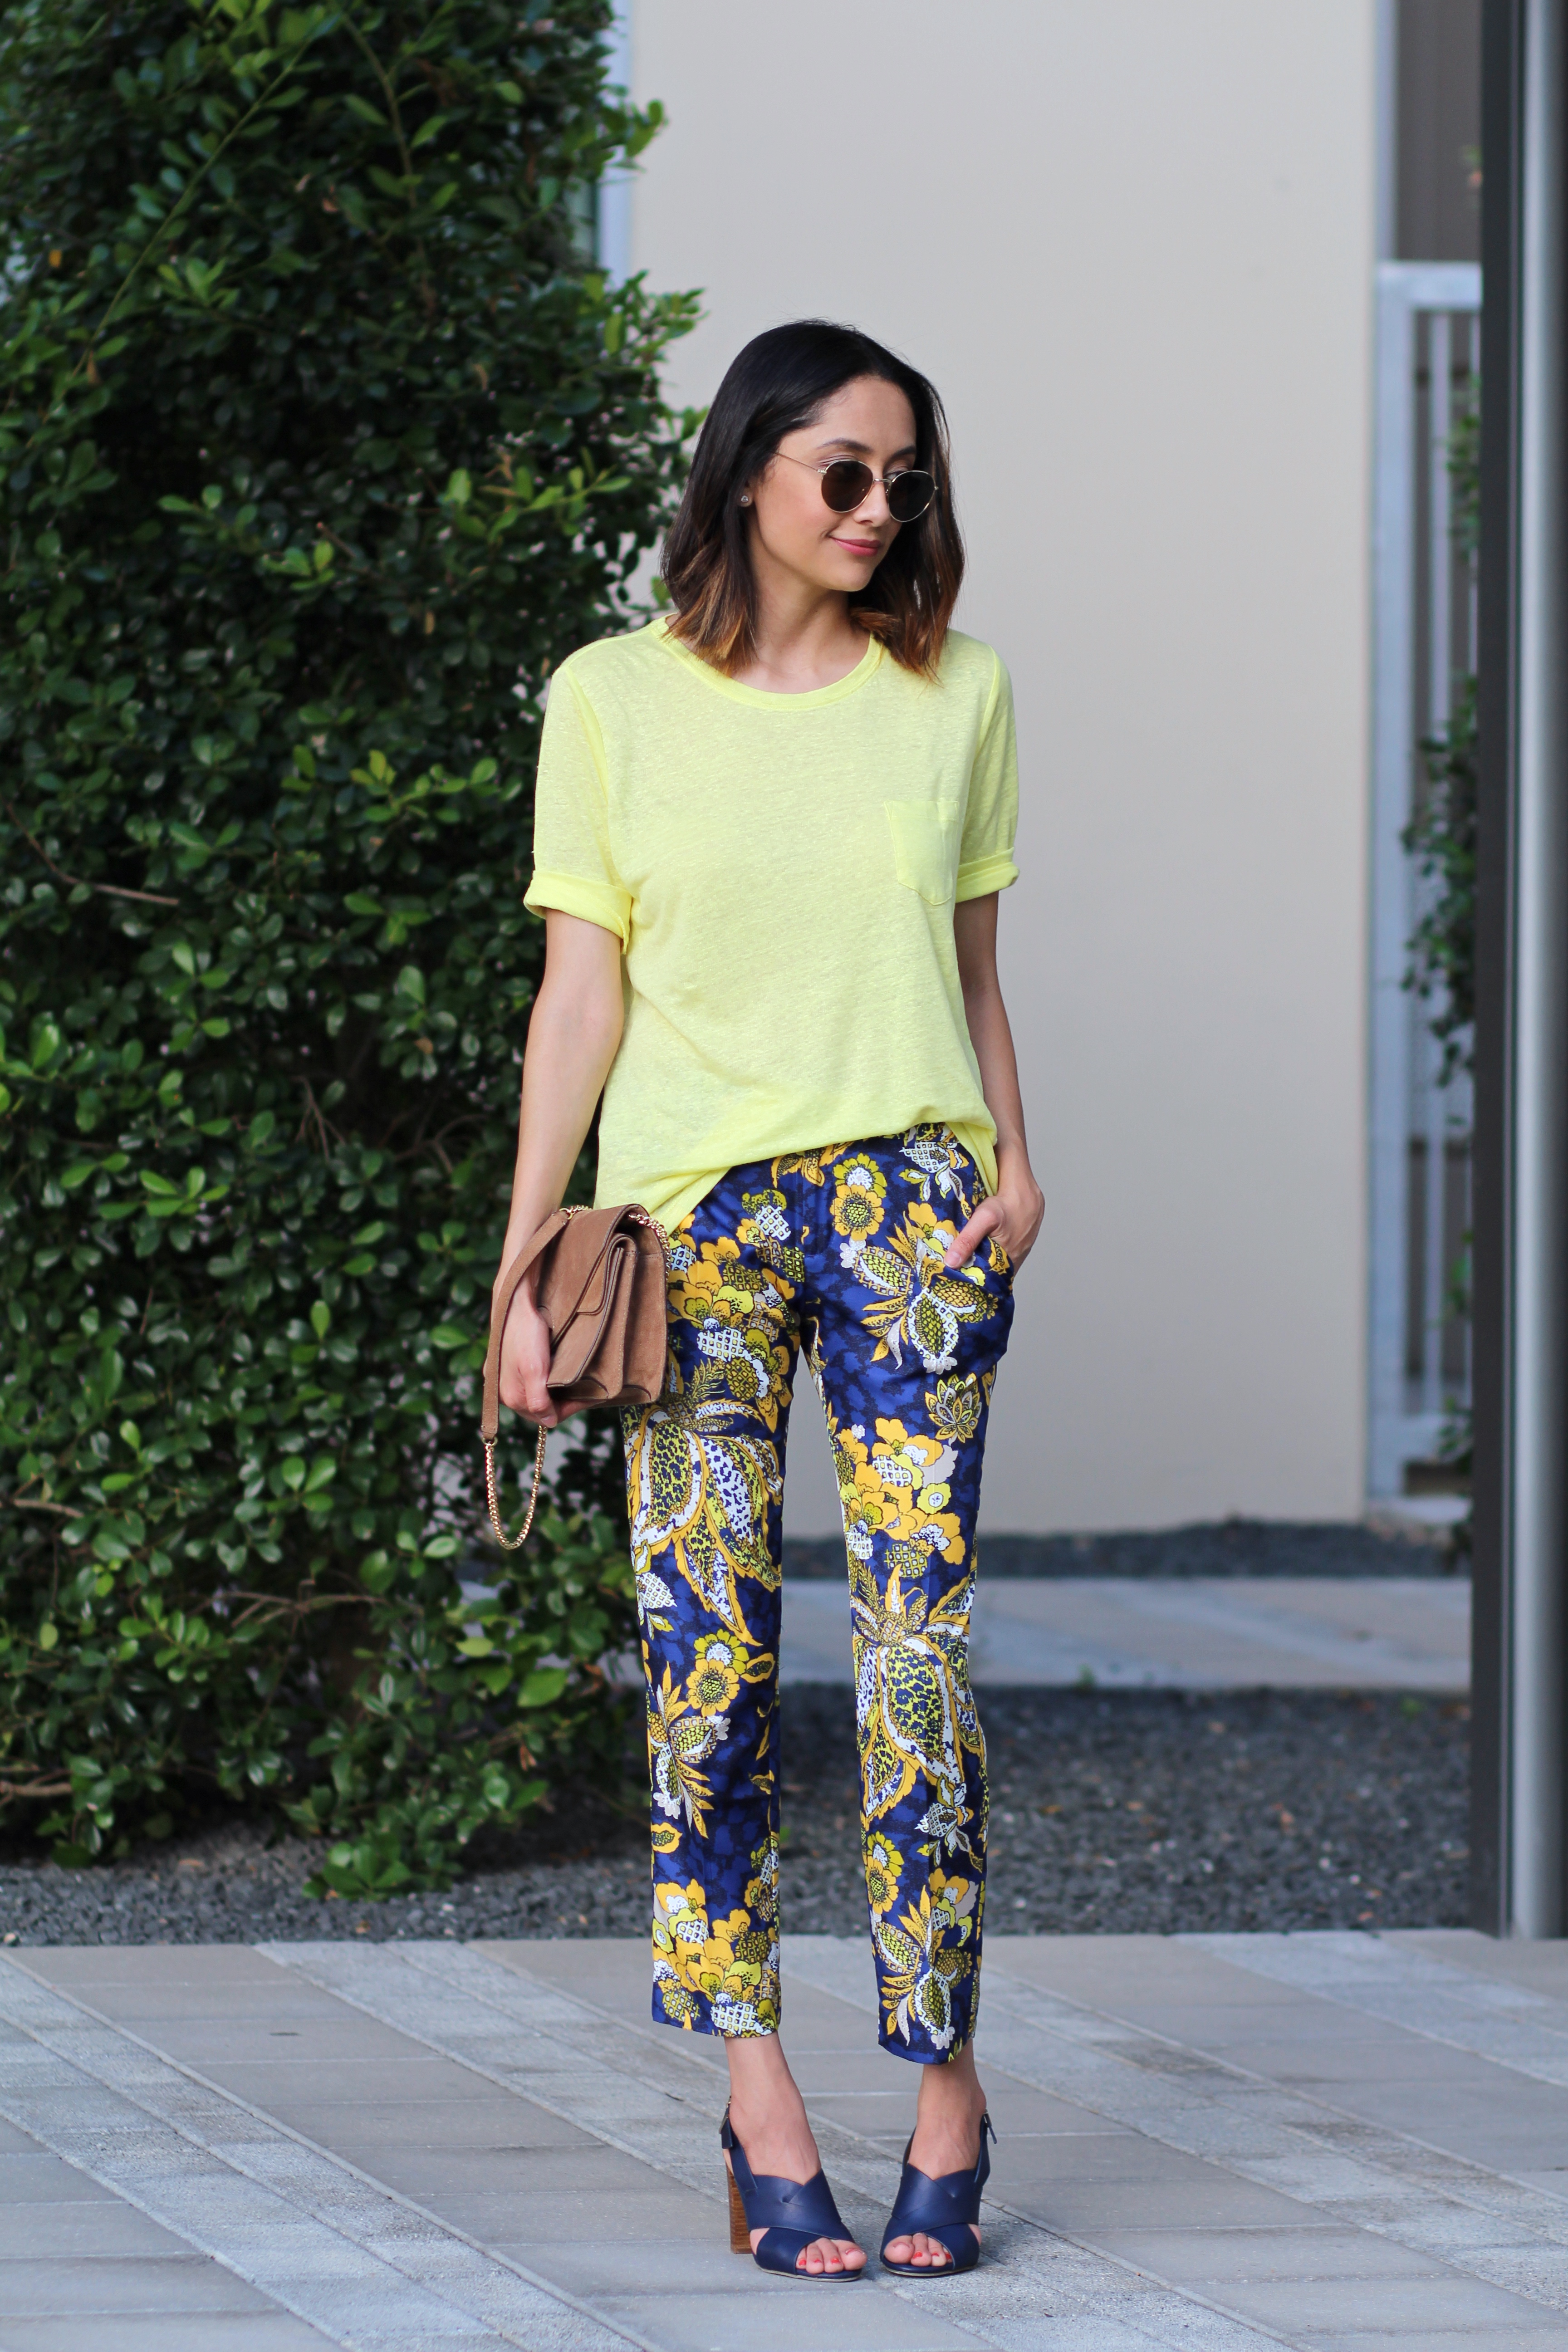 Lilly Beltran of Daily Craving fashion blog in a yellow tee and round sunglasses